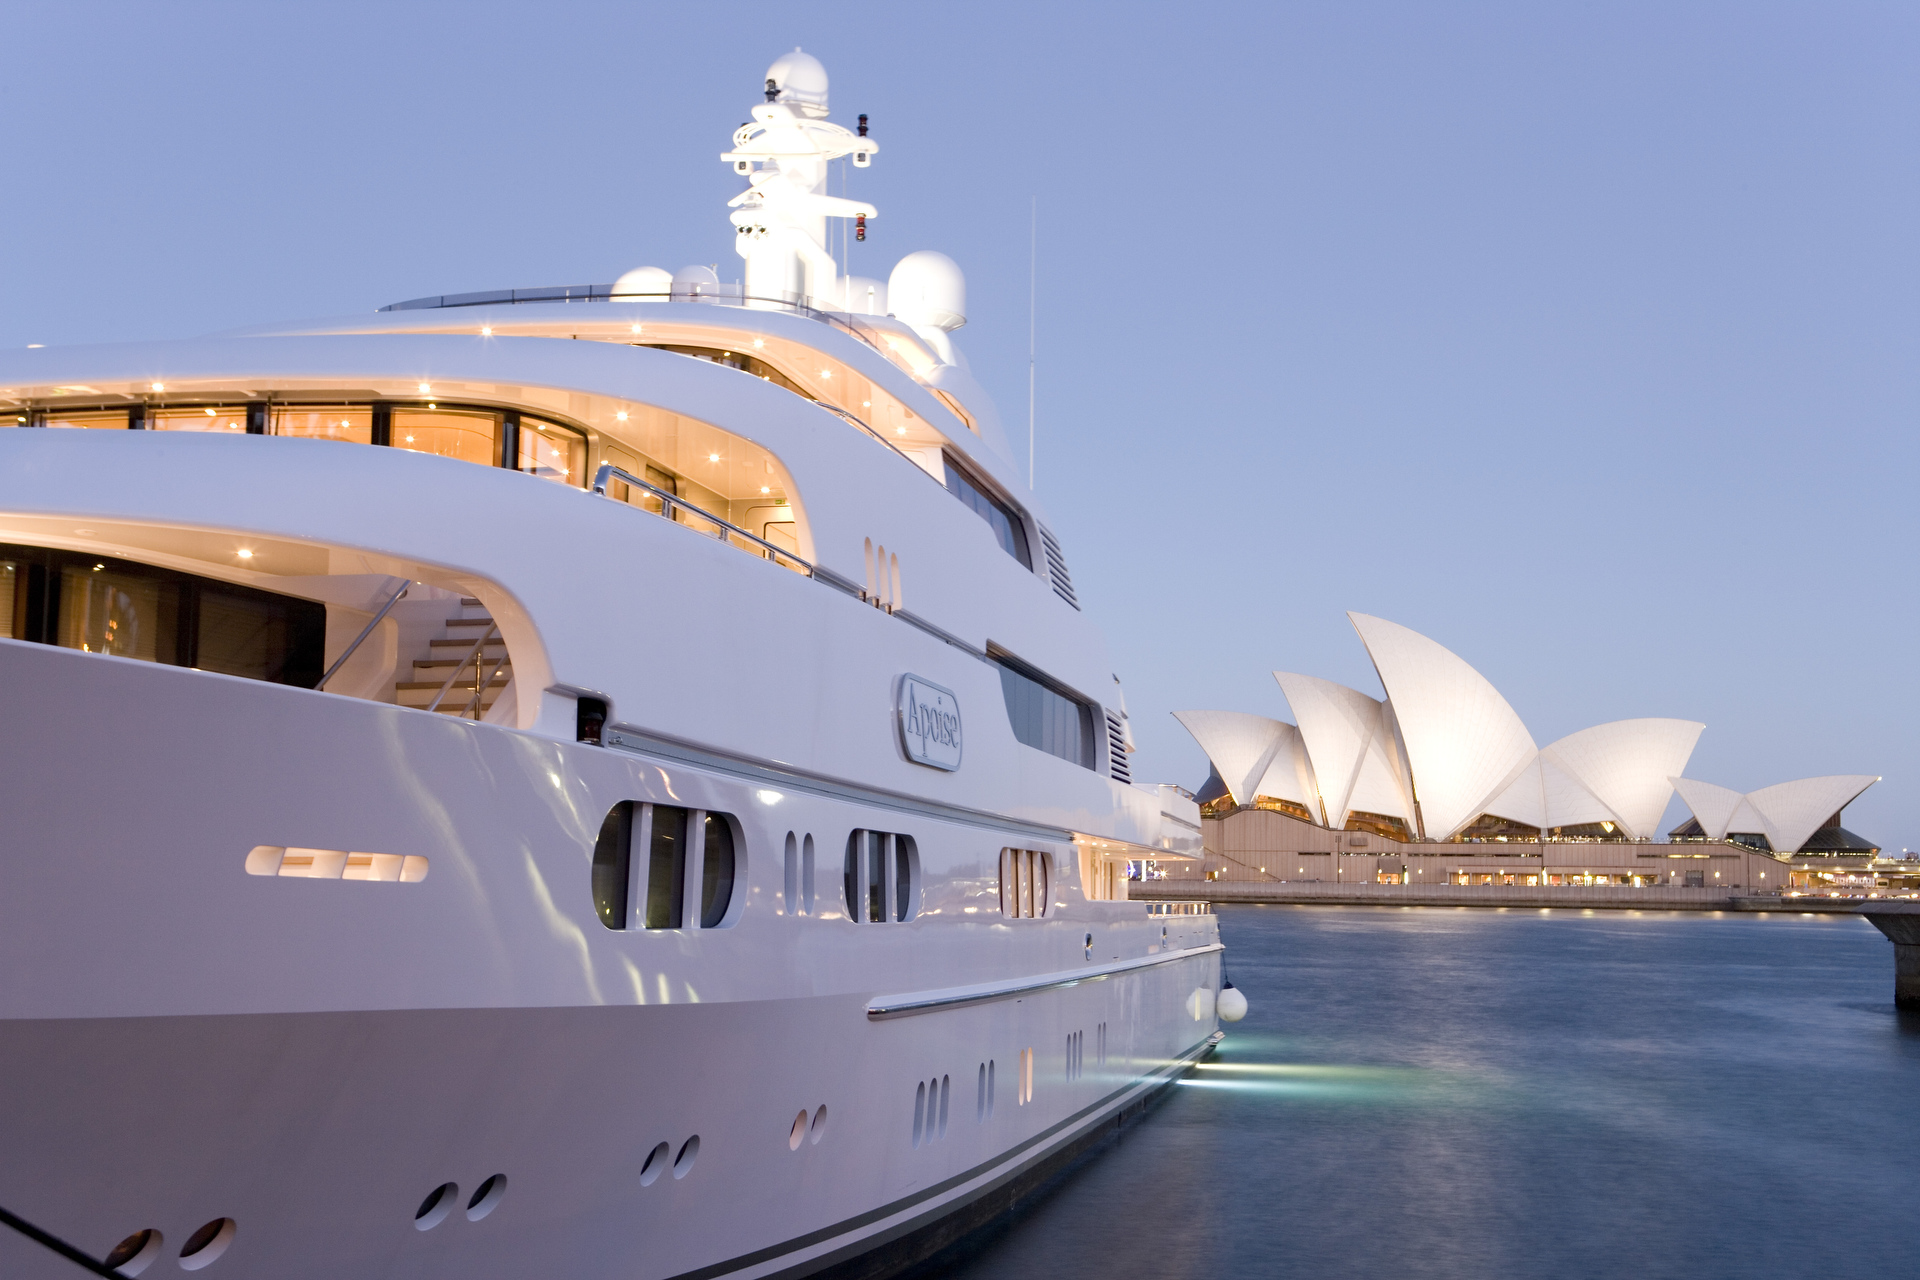 Sydney Superyacht & Boat Photographer, Super yacht, boats, luxury, rich, famous, dream, design, travel, ocean, yachts, super maxi, lifestyle, Opera house